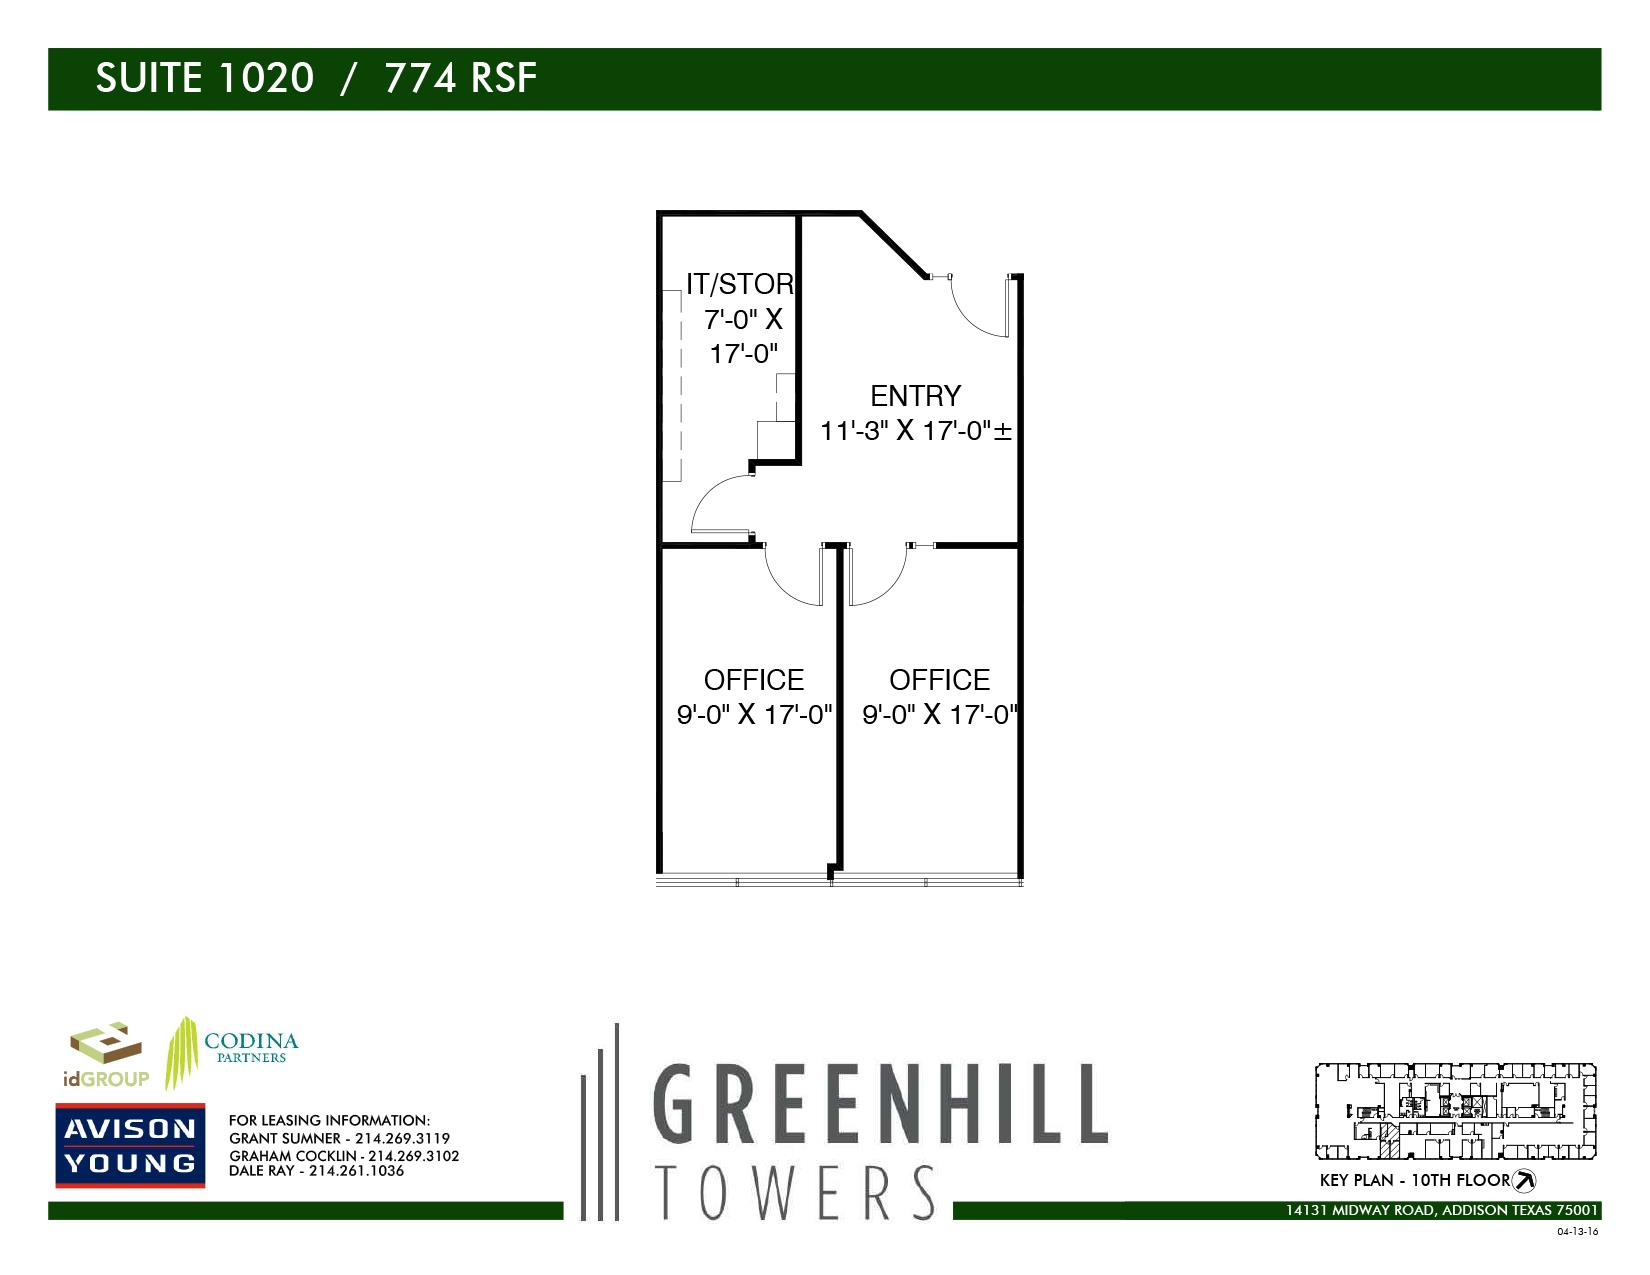 Greenhill Towers | Codina Partners - Suite 1020